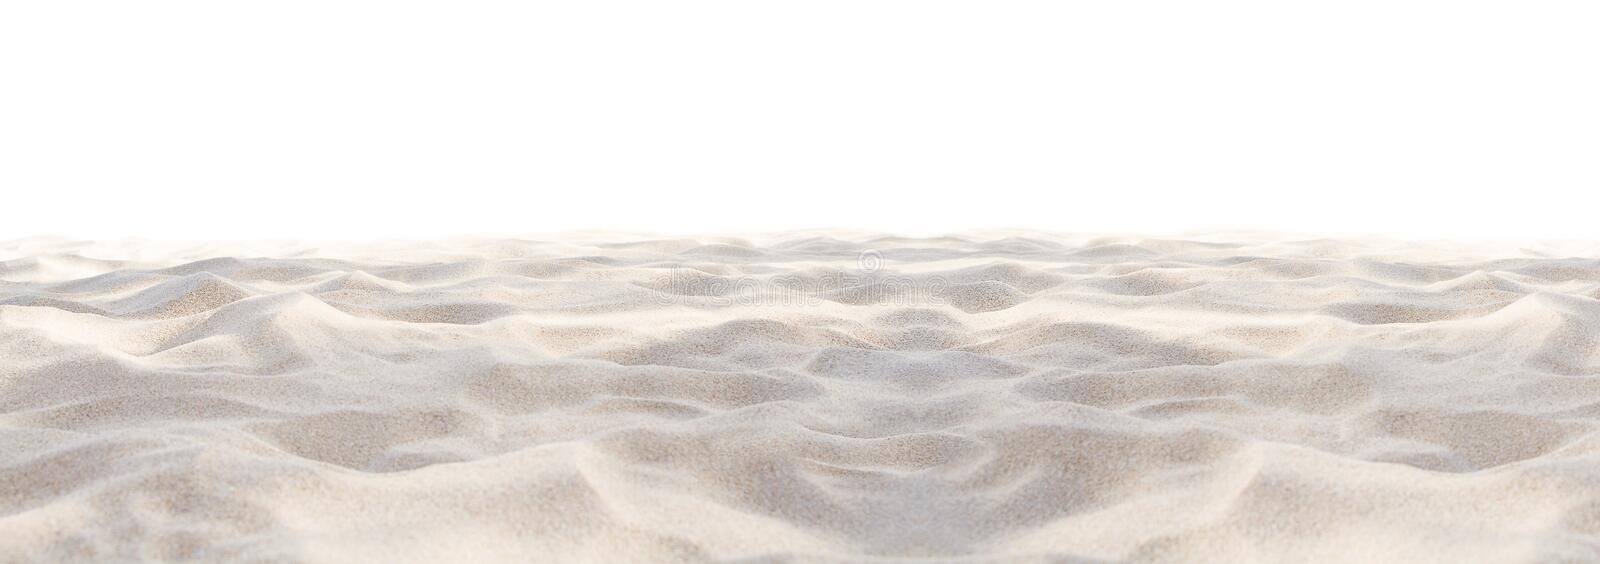 Sand beach texture isolated on white background. Mock up and copy space. Top view. Selective focus stock photography